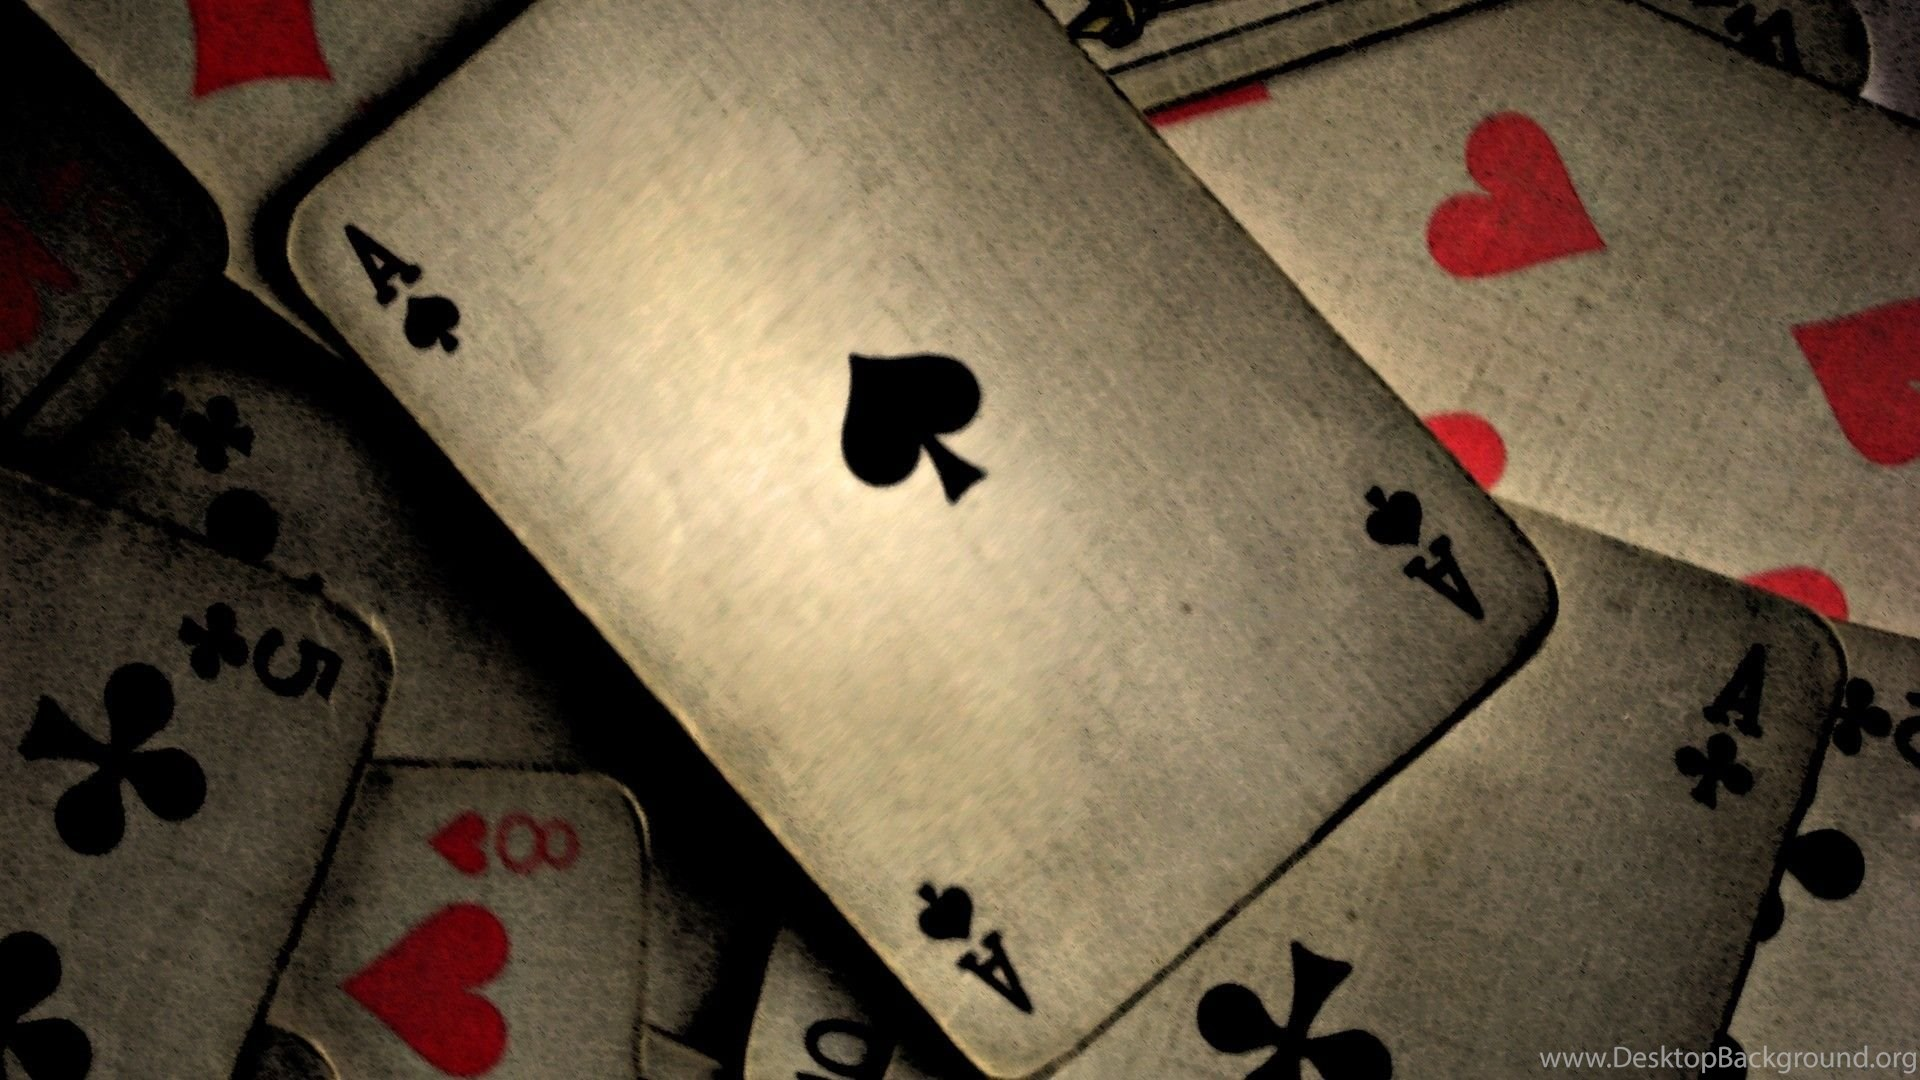 Master The Art Of Casino With These 7 Tips